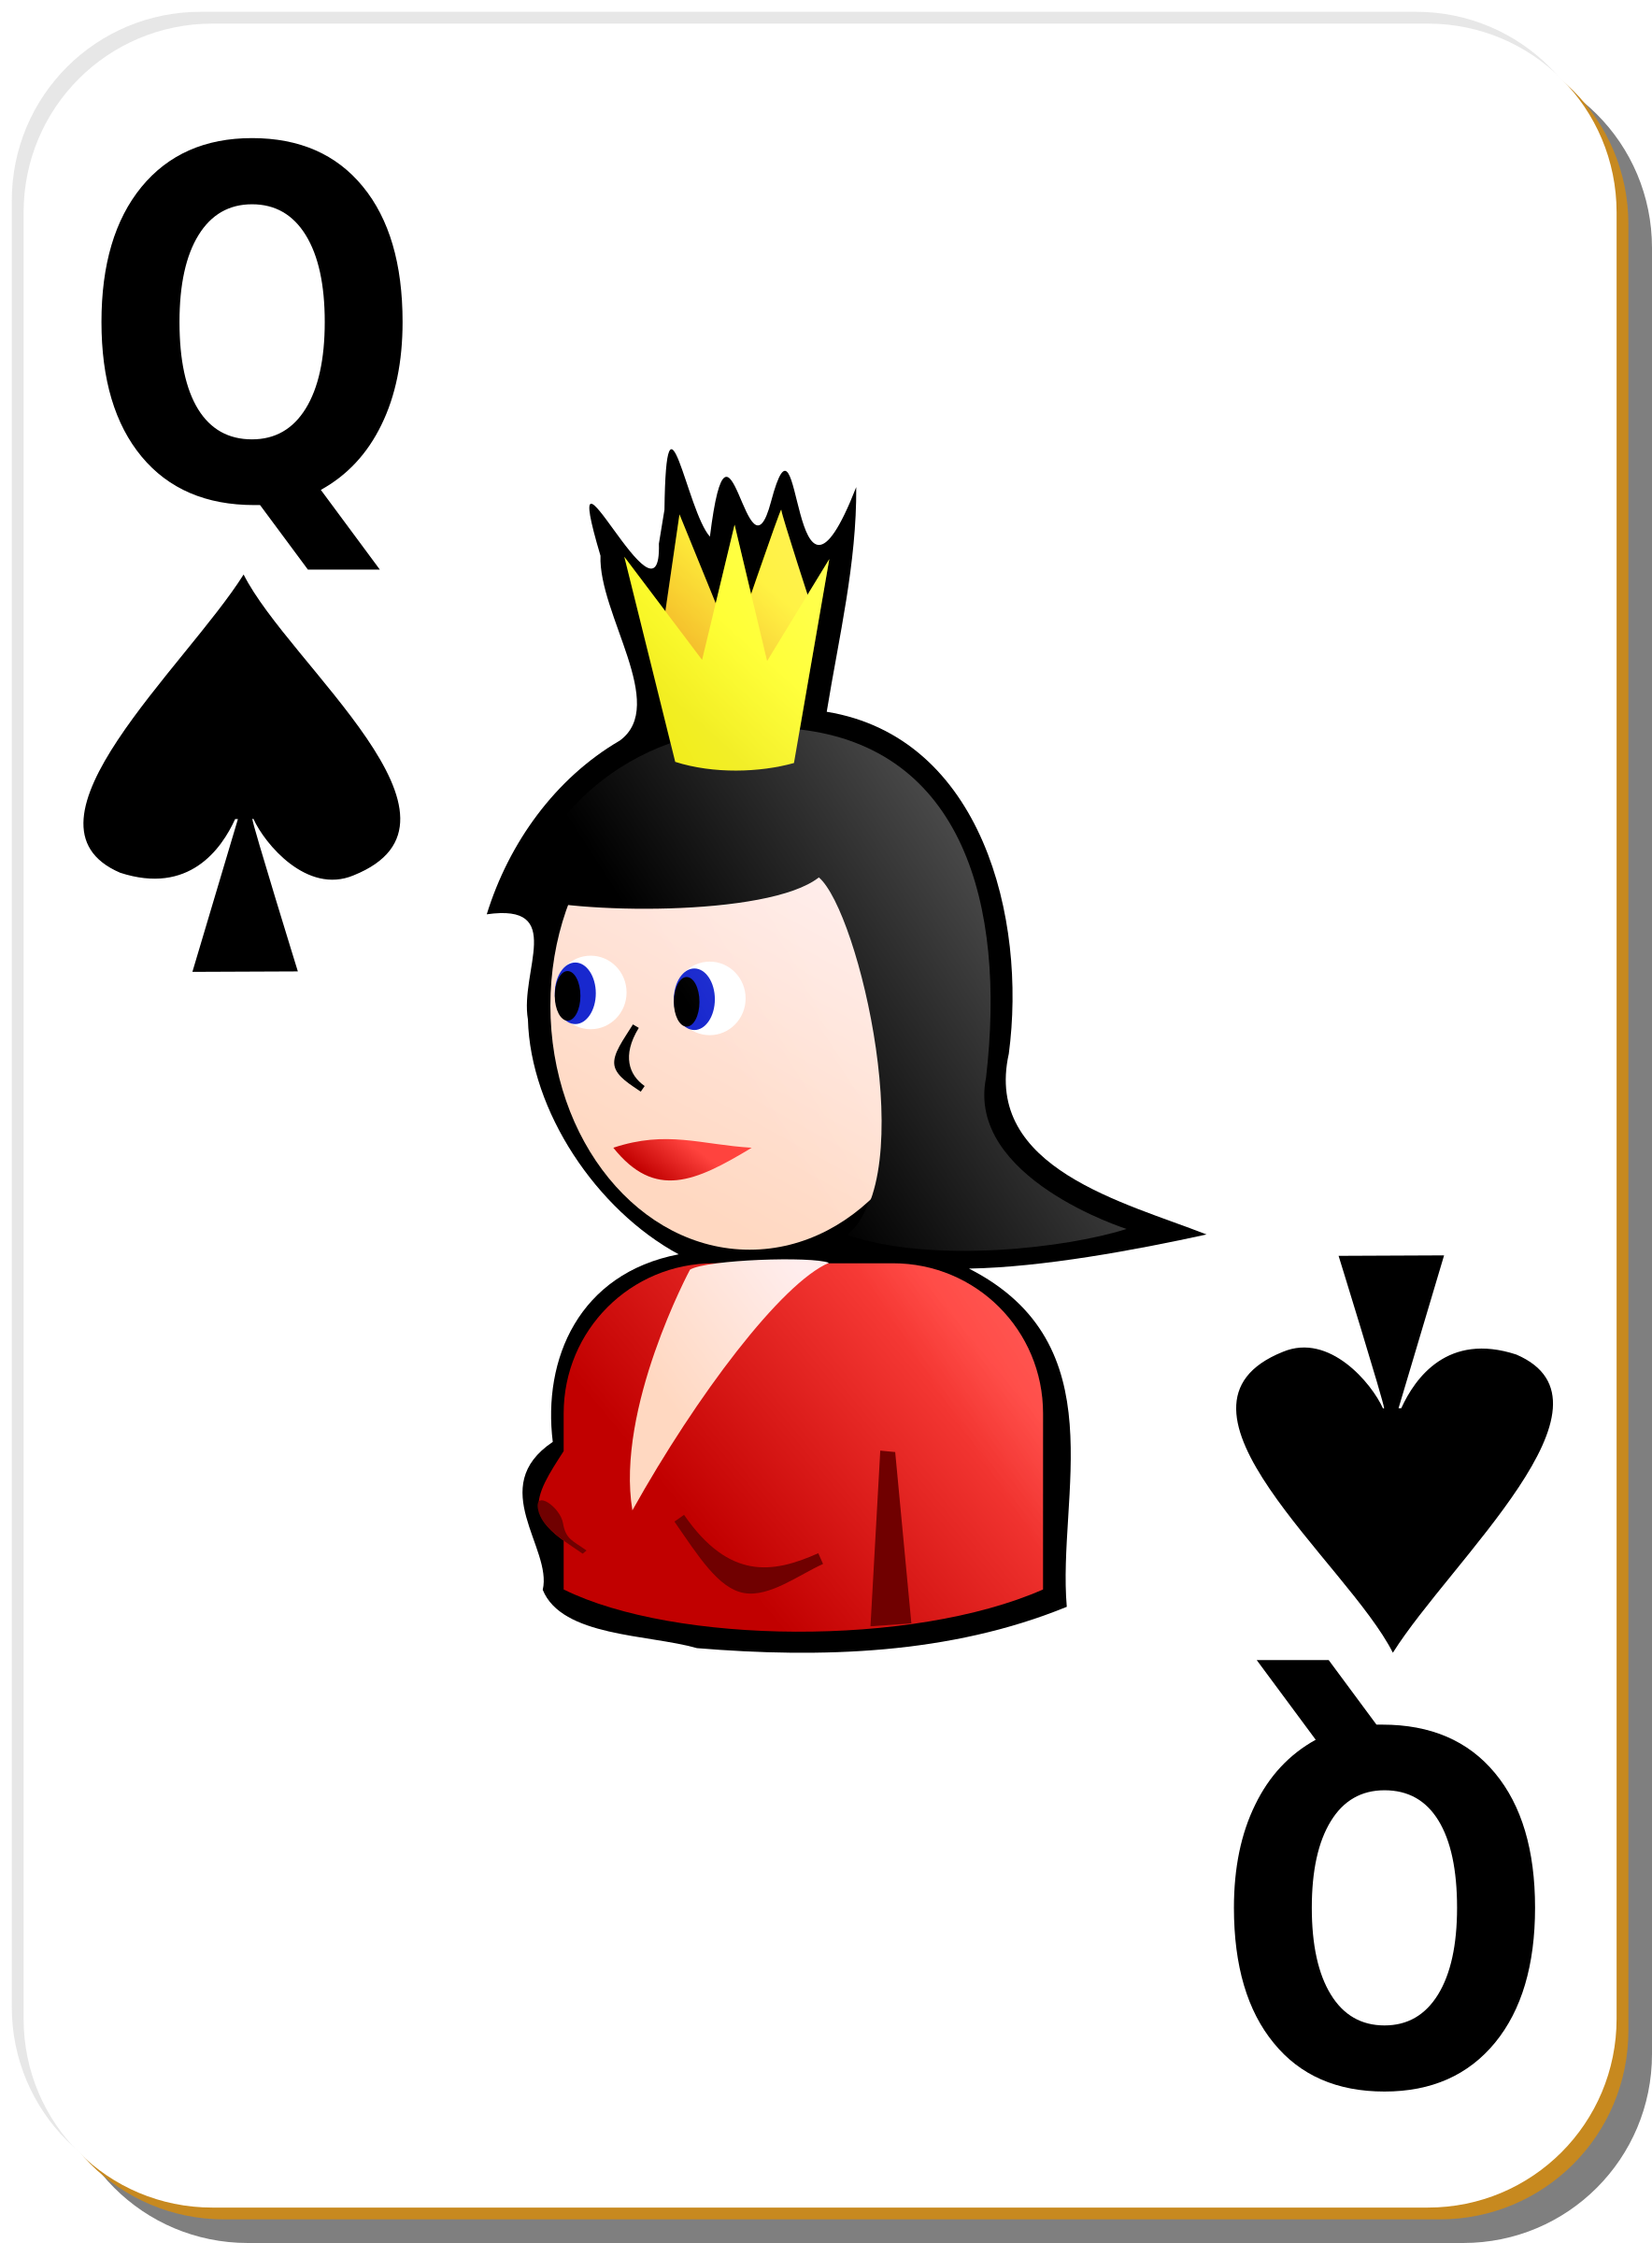 White deck: Queen of spades by nicubunu